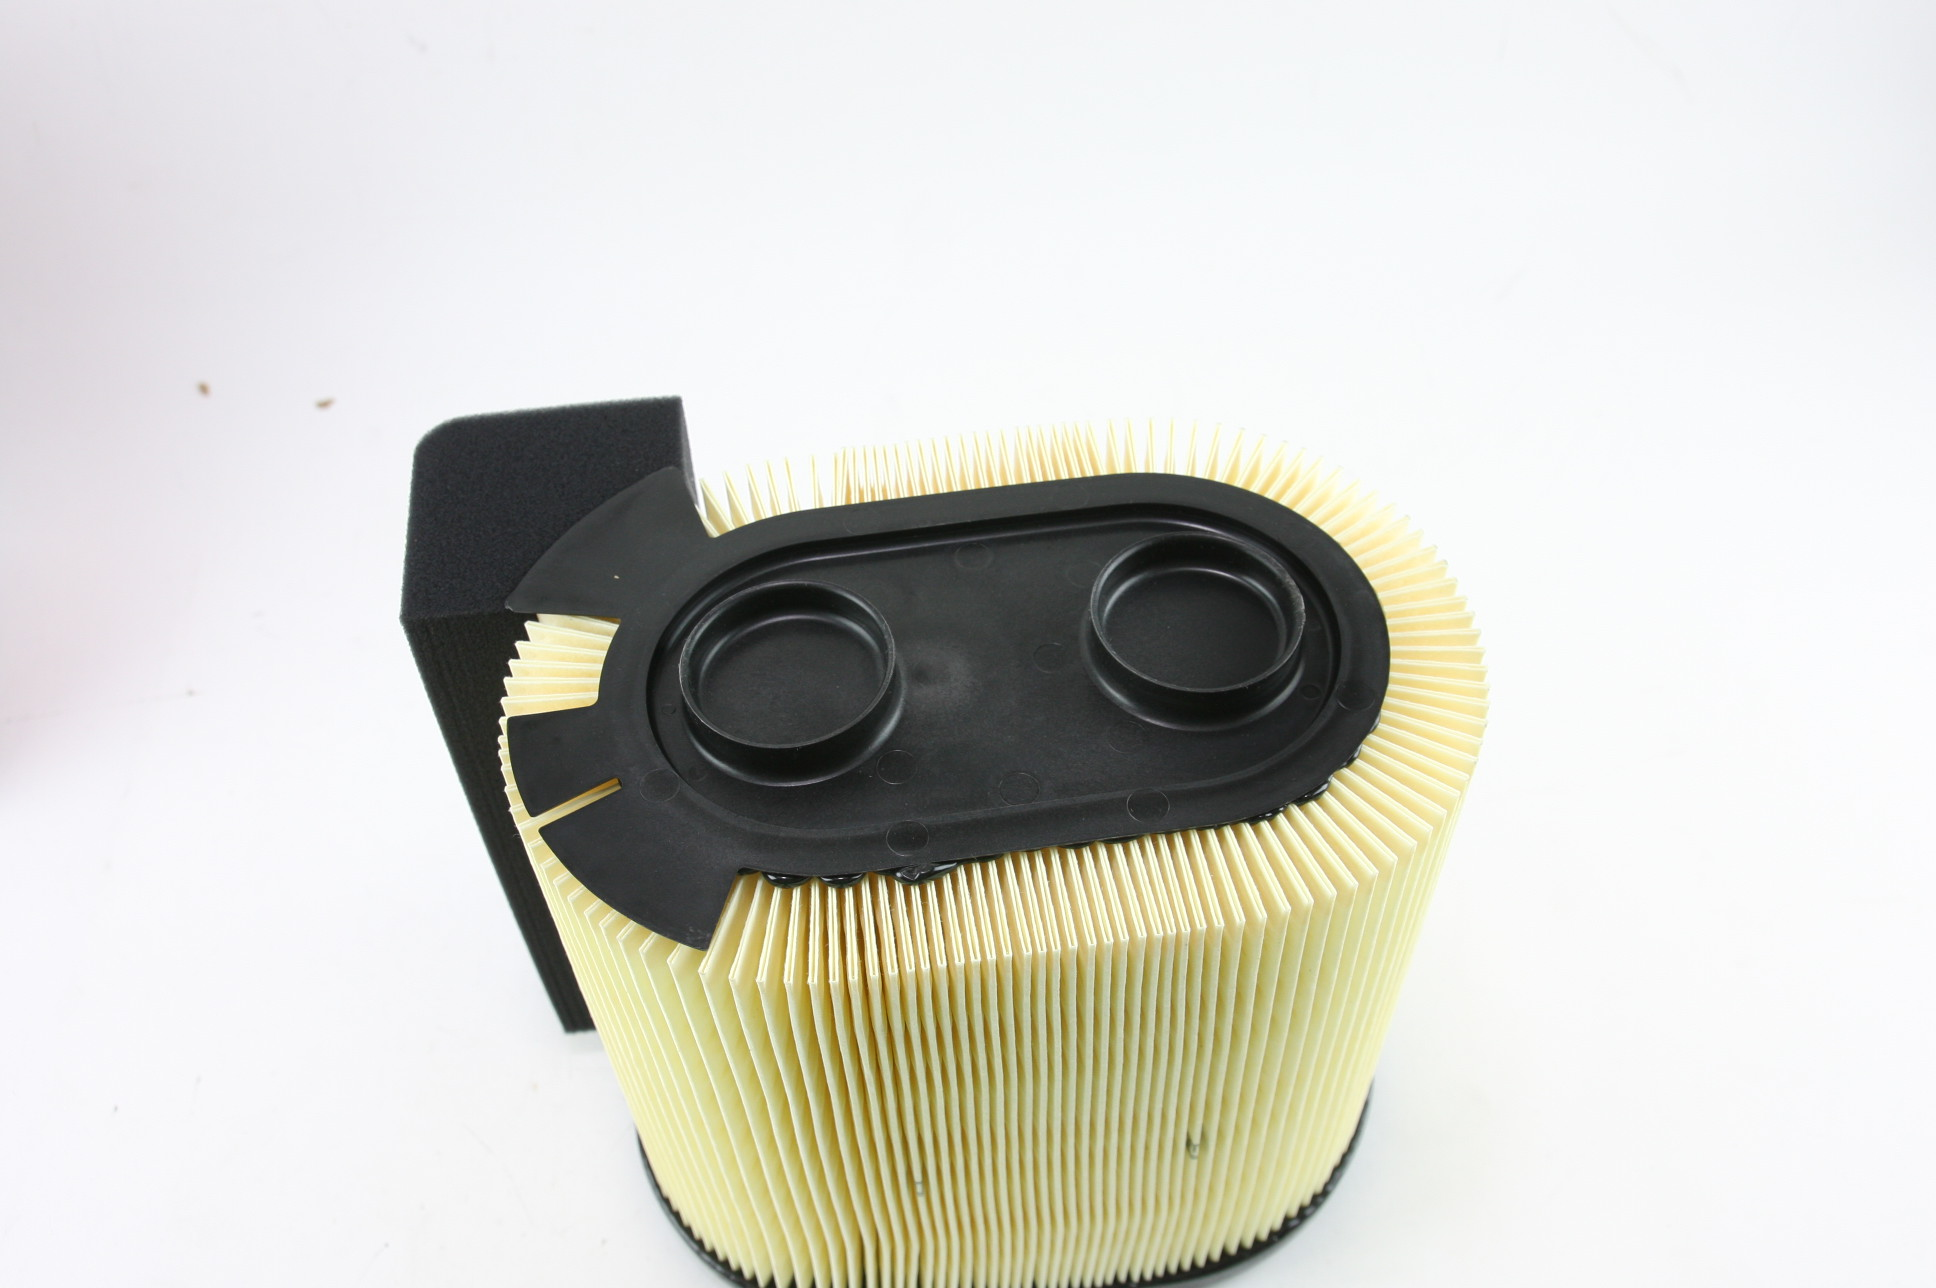 New OEM Motorcraft FA1927 Ford HC3Z9601A Powerstroke Diesel Air Filter Free Ship - image 6